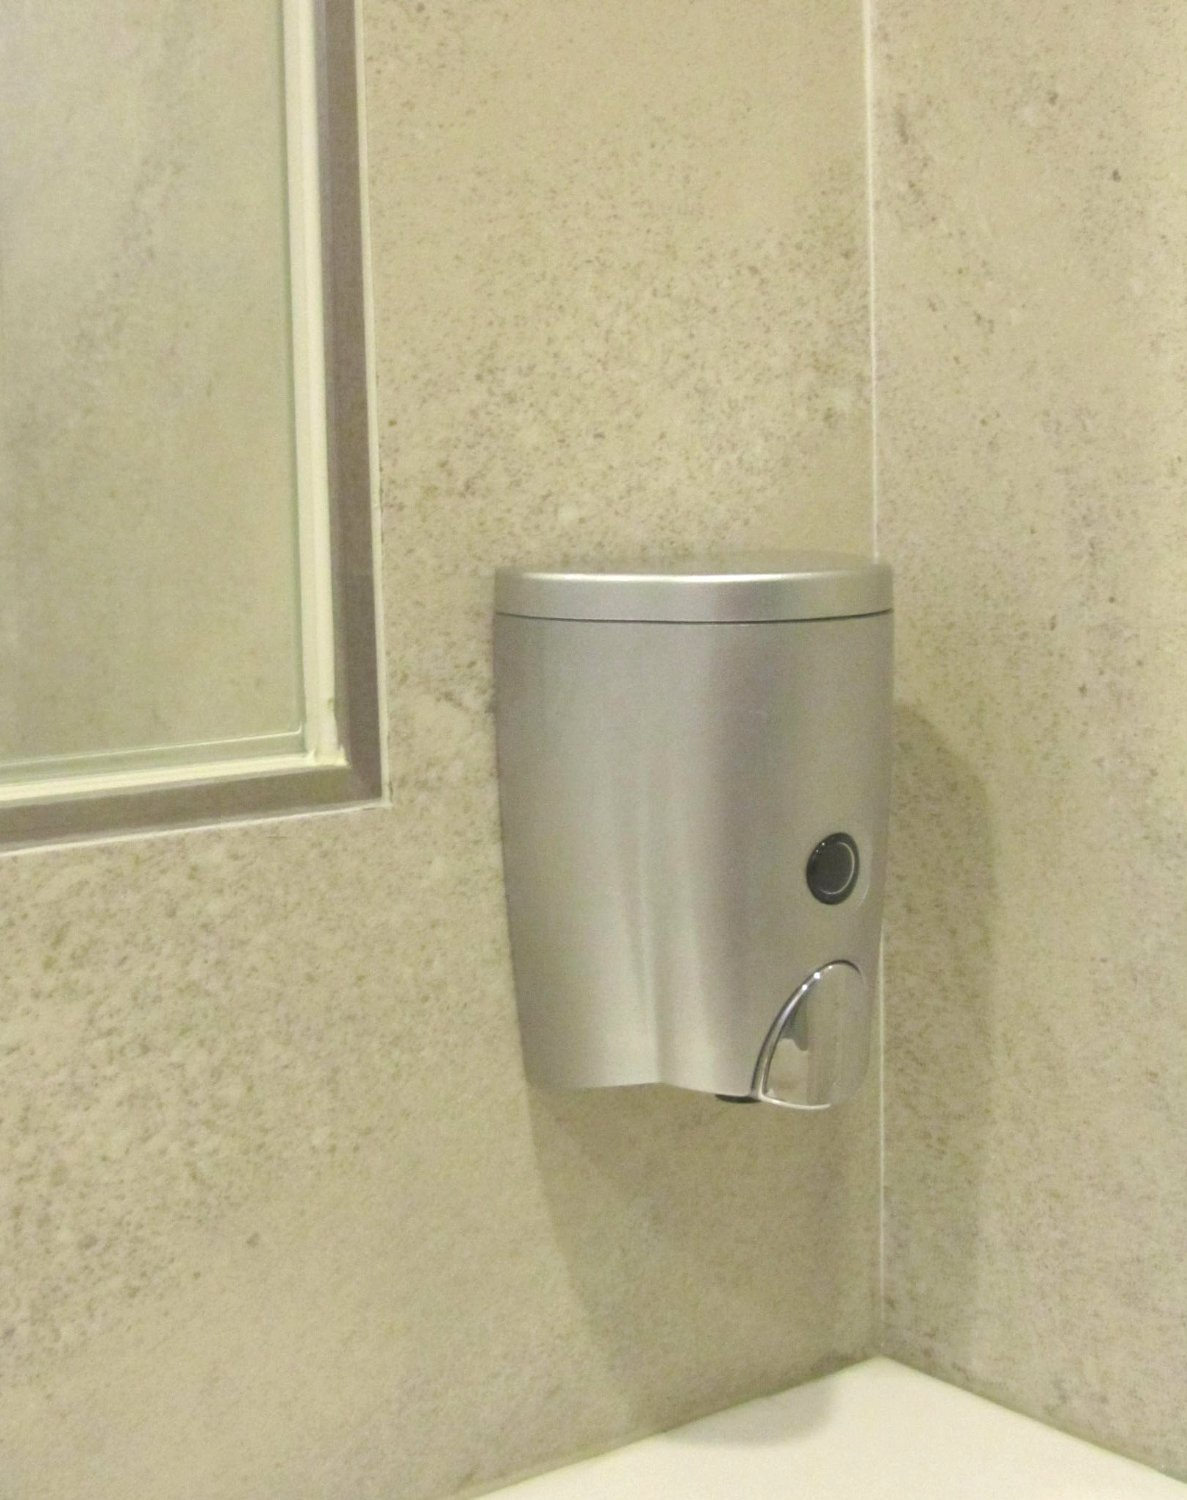 Amazon.com: Dispensador De Jabon Liquido De Pared Manual - Para ...